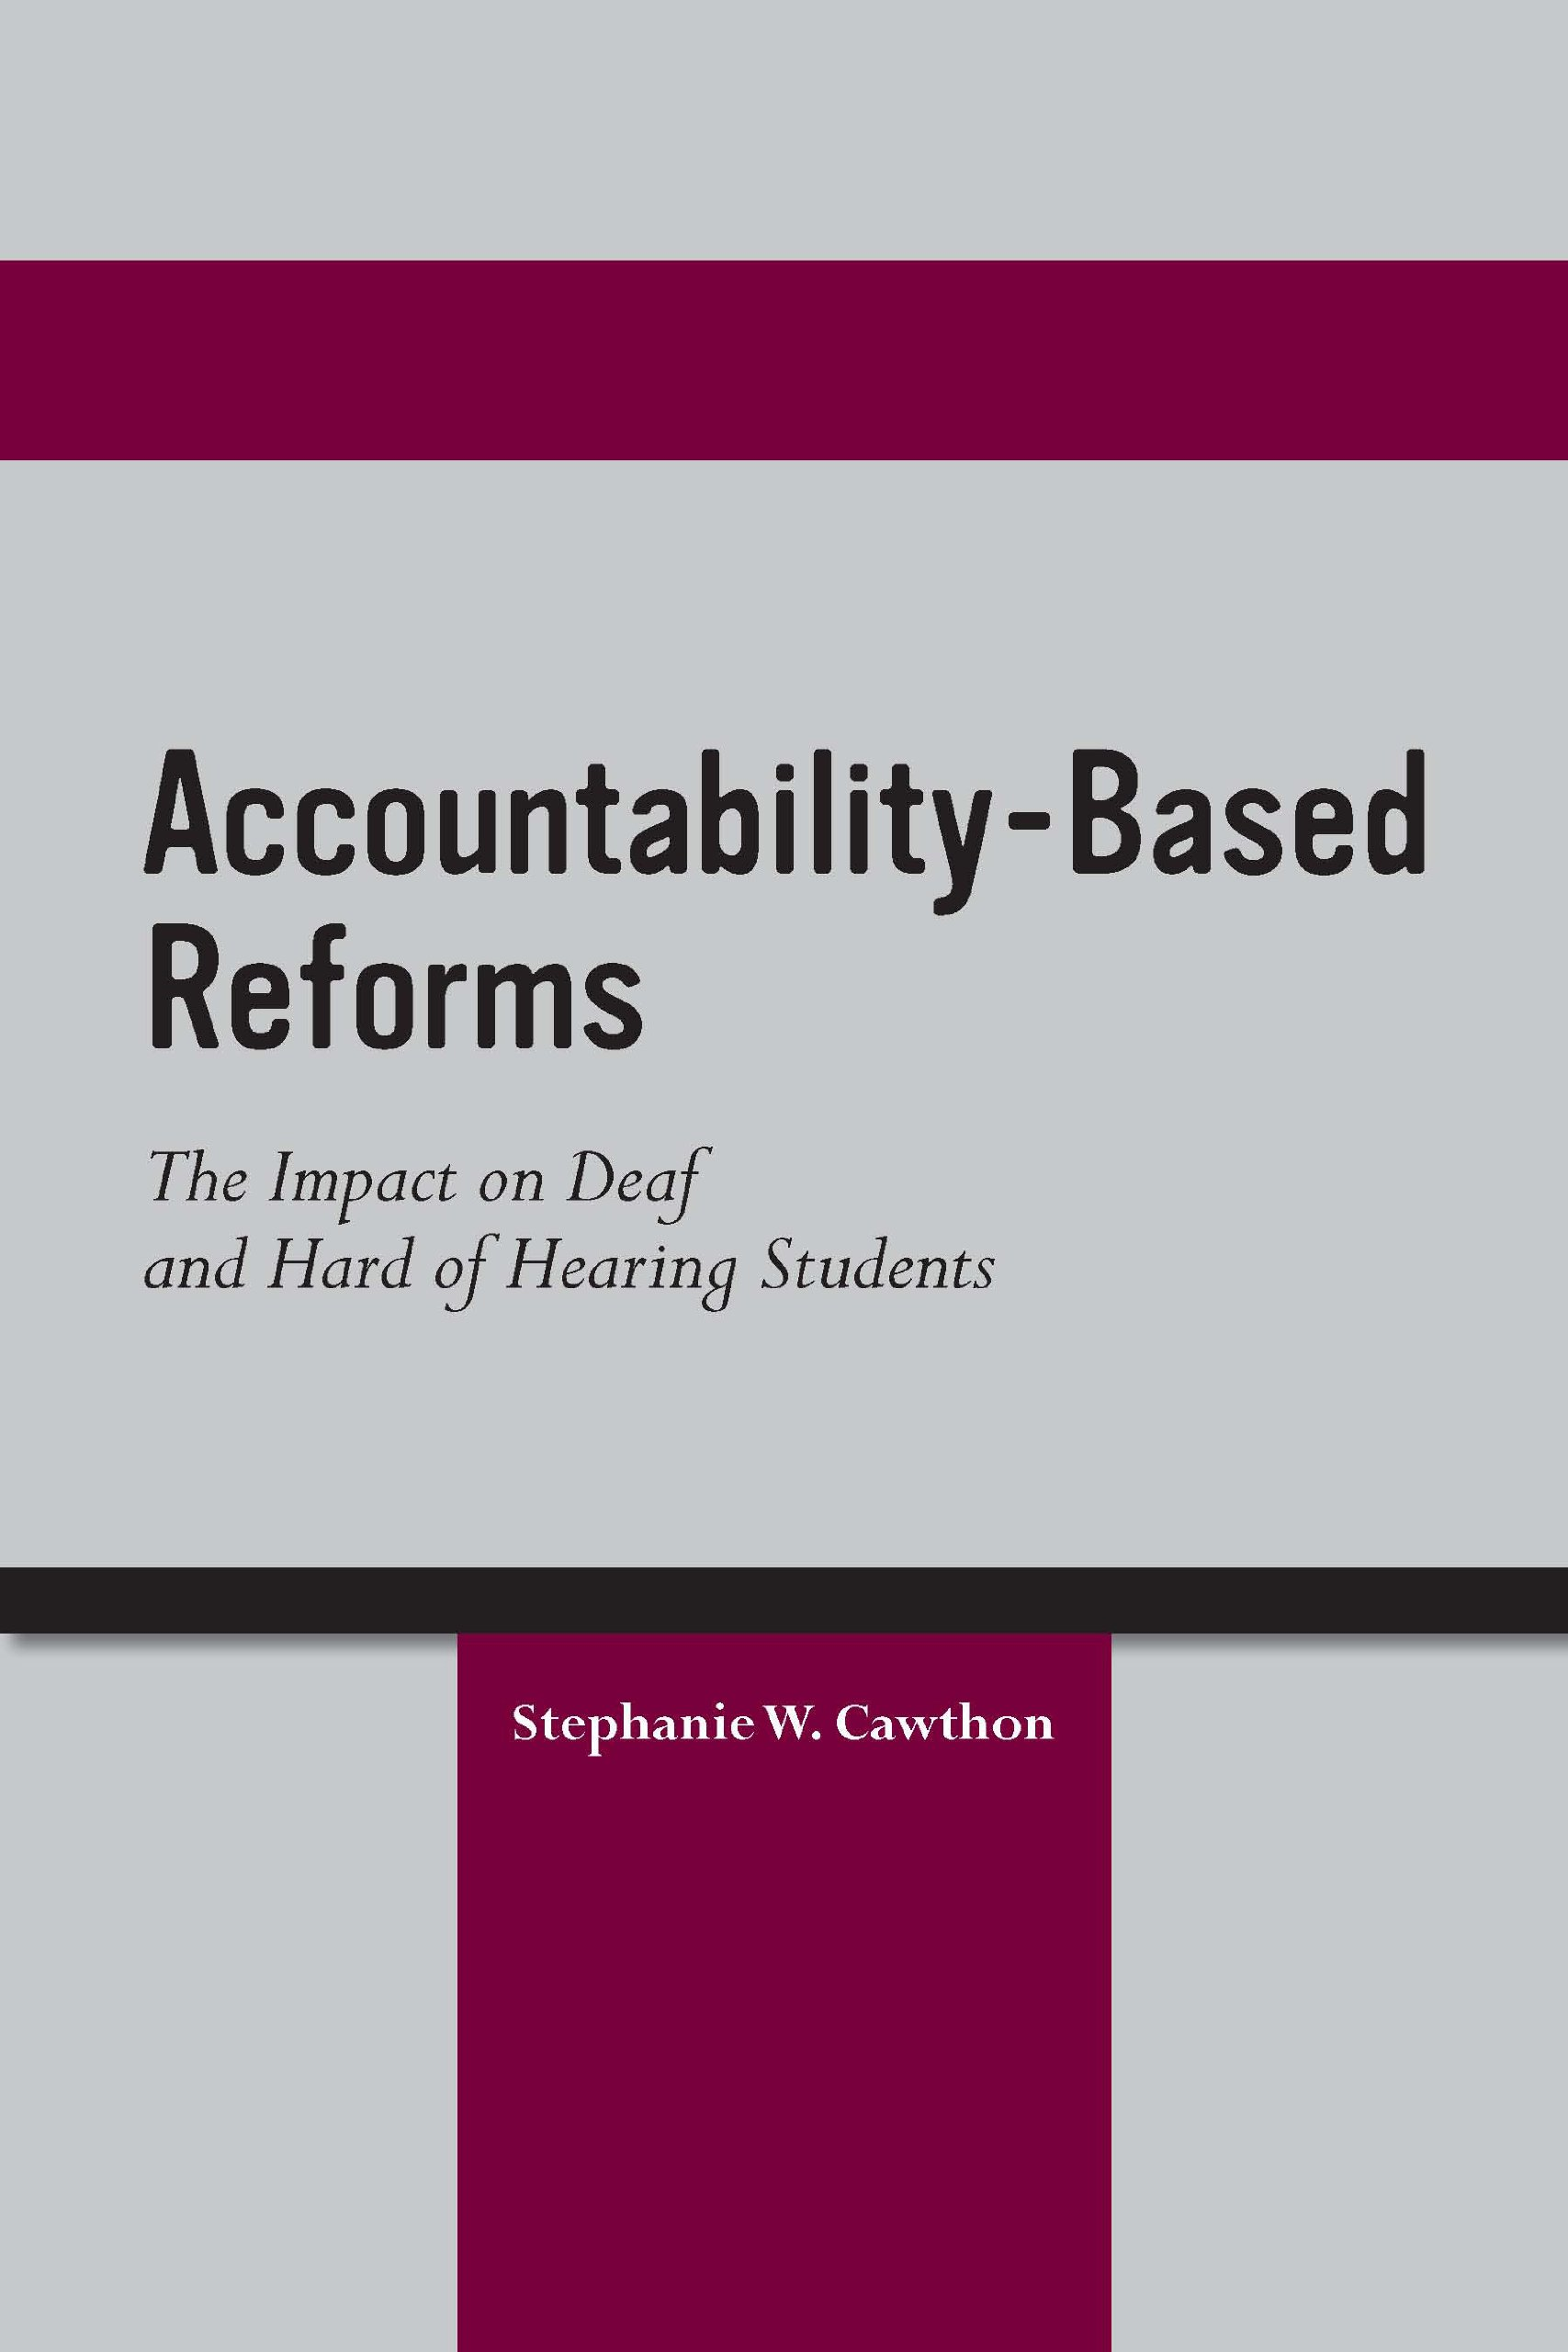 Accountability-Based Reforms The Impact on Deaf and Hard of Hearing Students